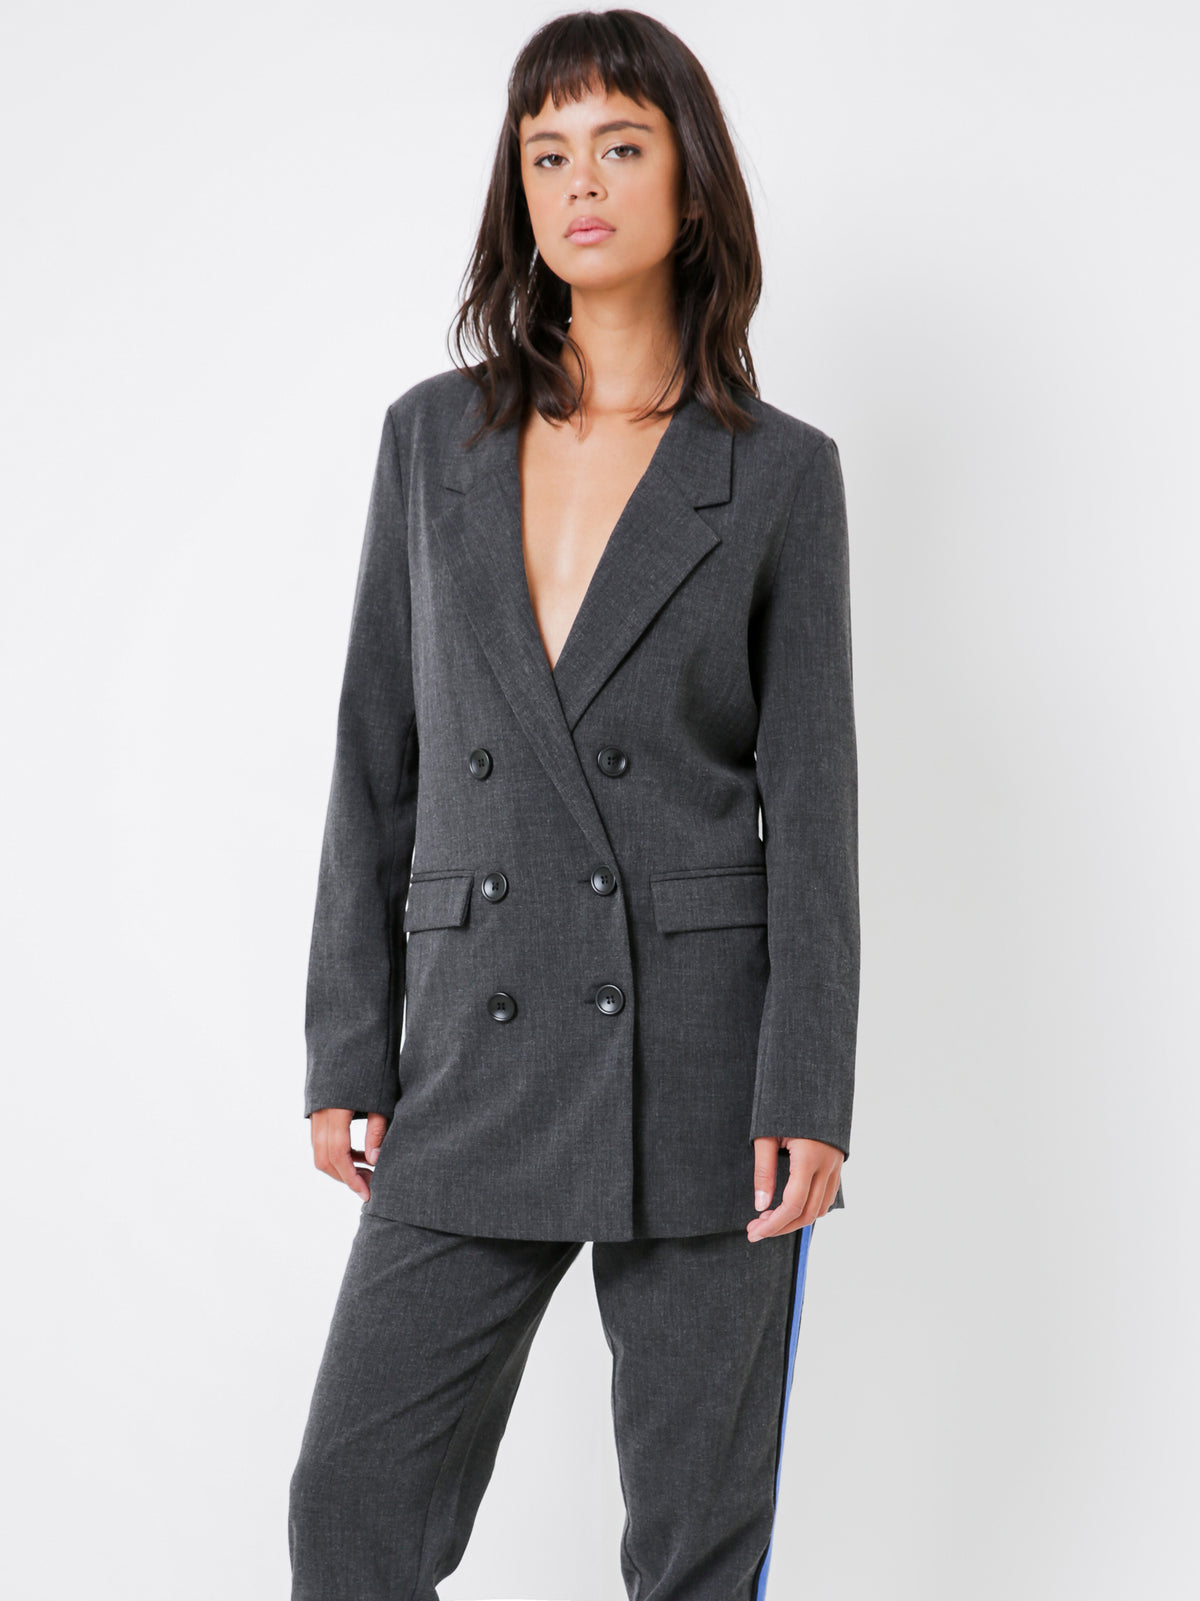 Double Breasted Blazer in Charcoal